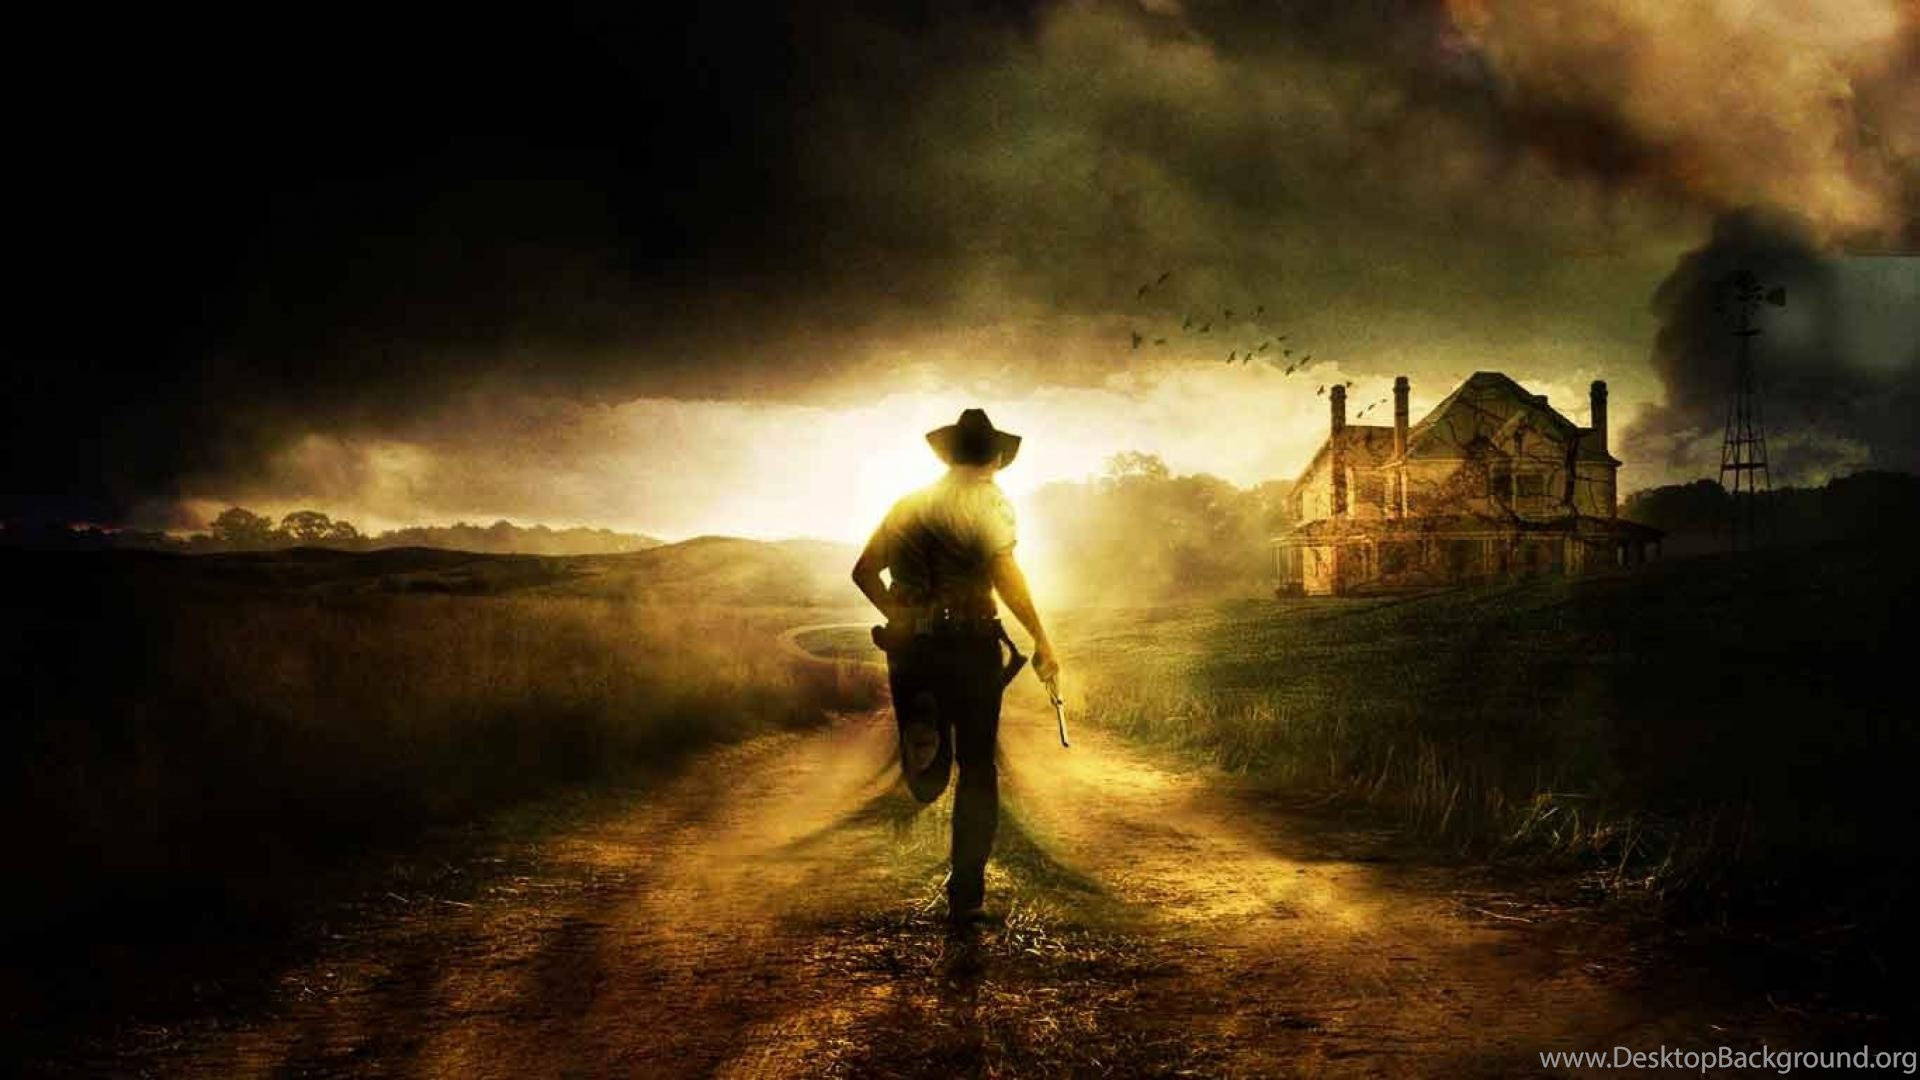 Free Wallpapers The Walking Dead Wallpapers Farm Desktop Background